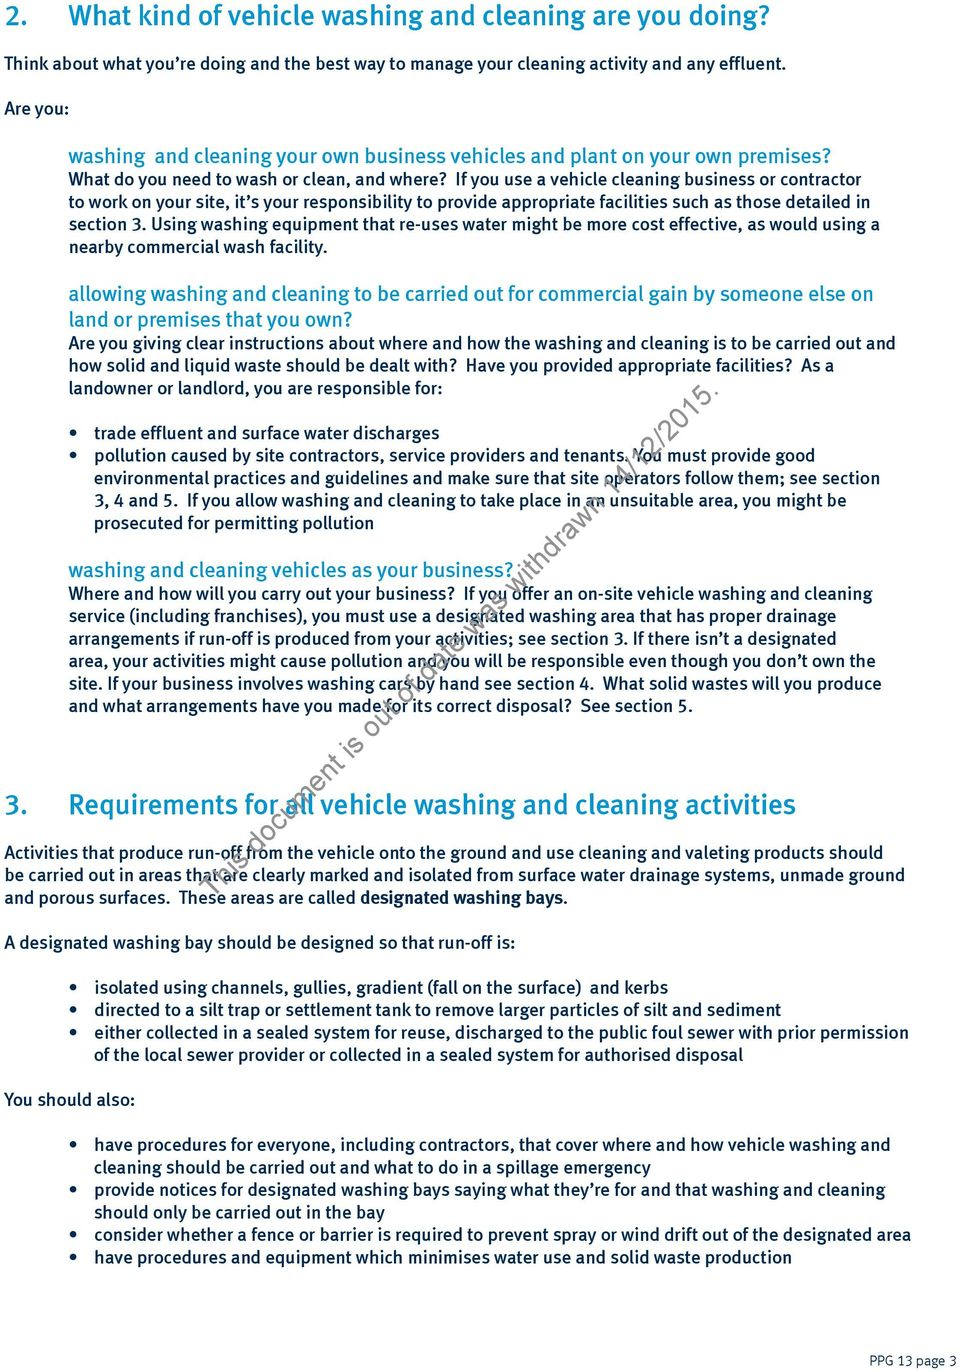 If you use a vehicle cleaning business or contractor to work on your site, it s your responsibility to provide appropriate facilities such as those detailed in section 3.